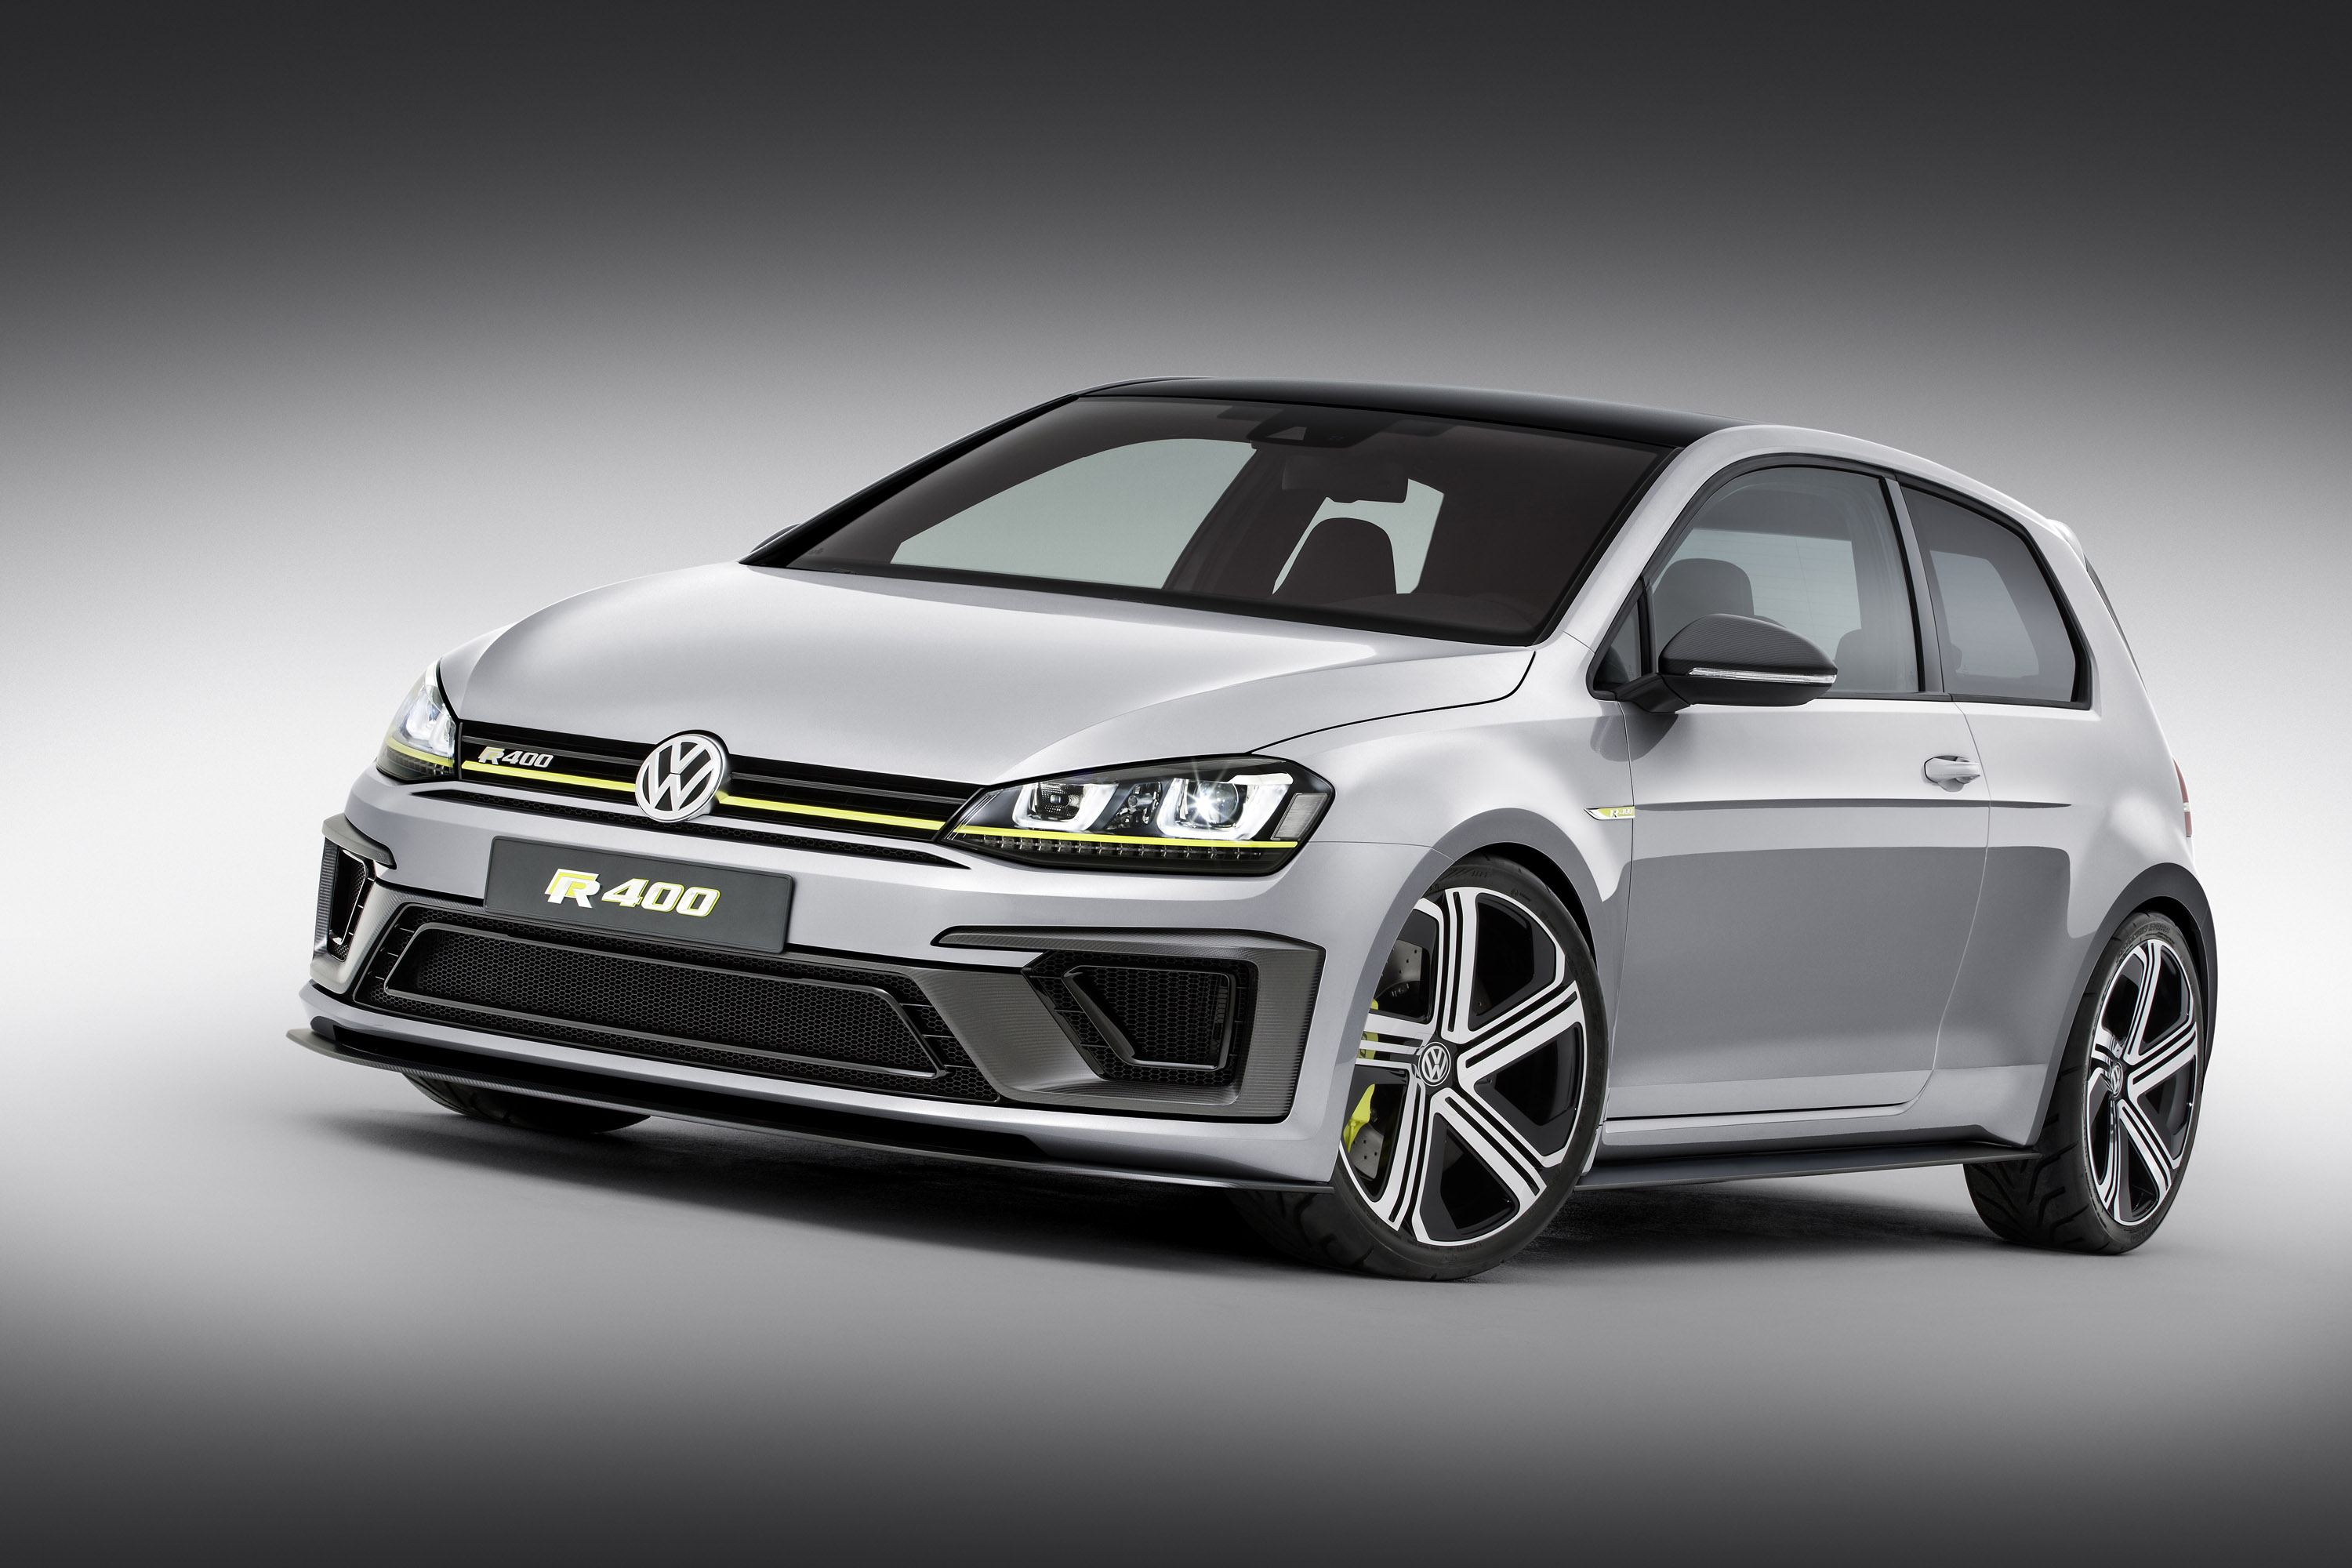 Volkswagen Golf R 400 Concept photo #1